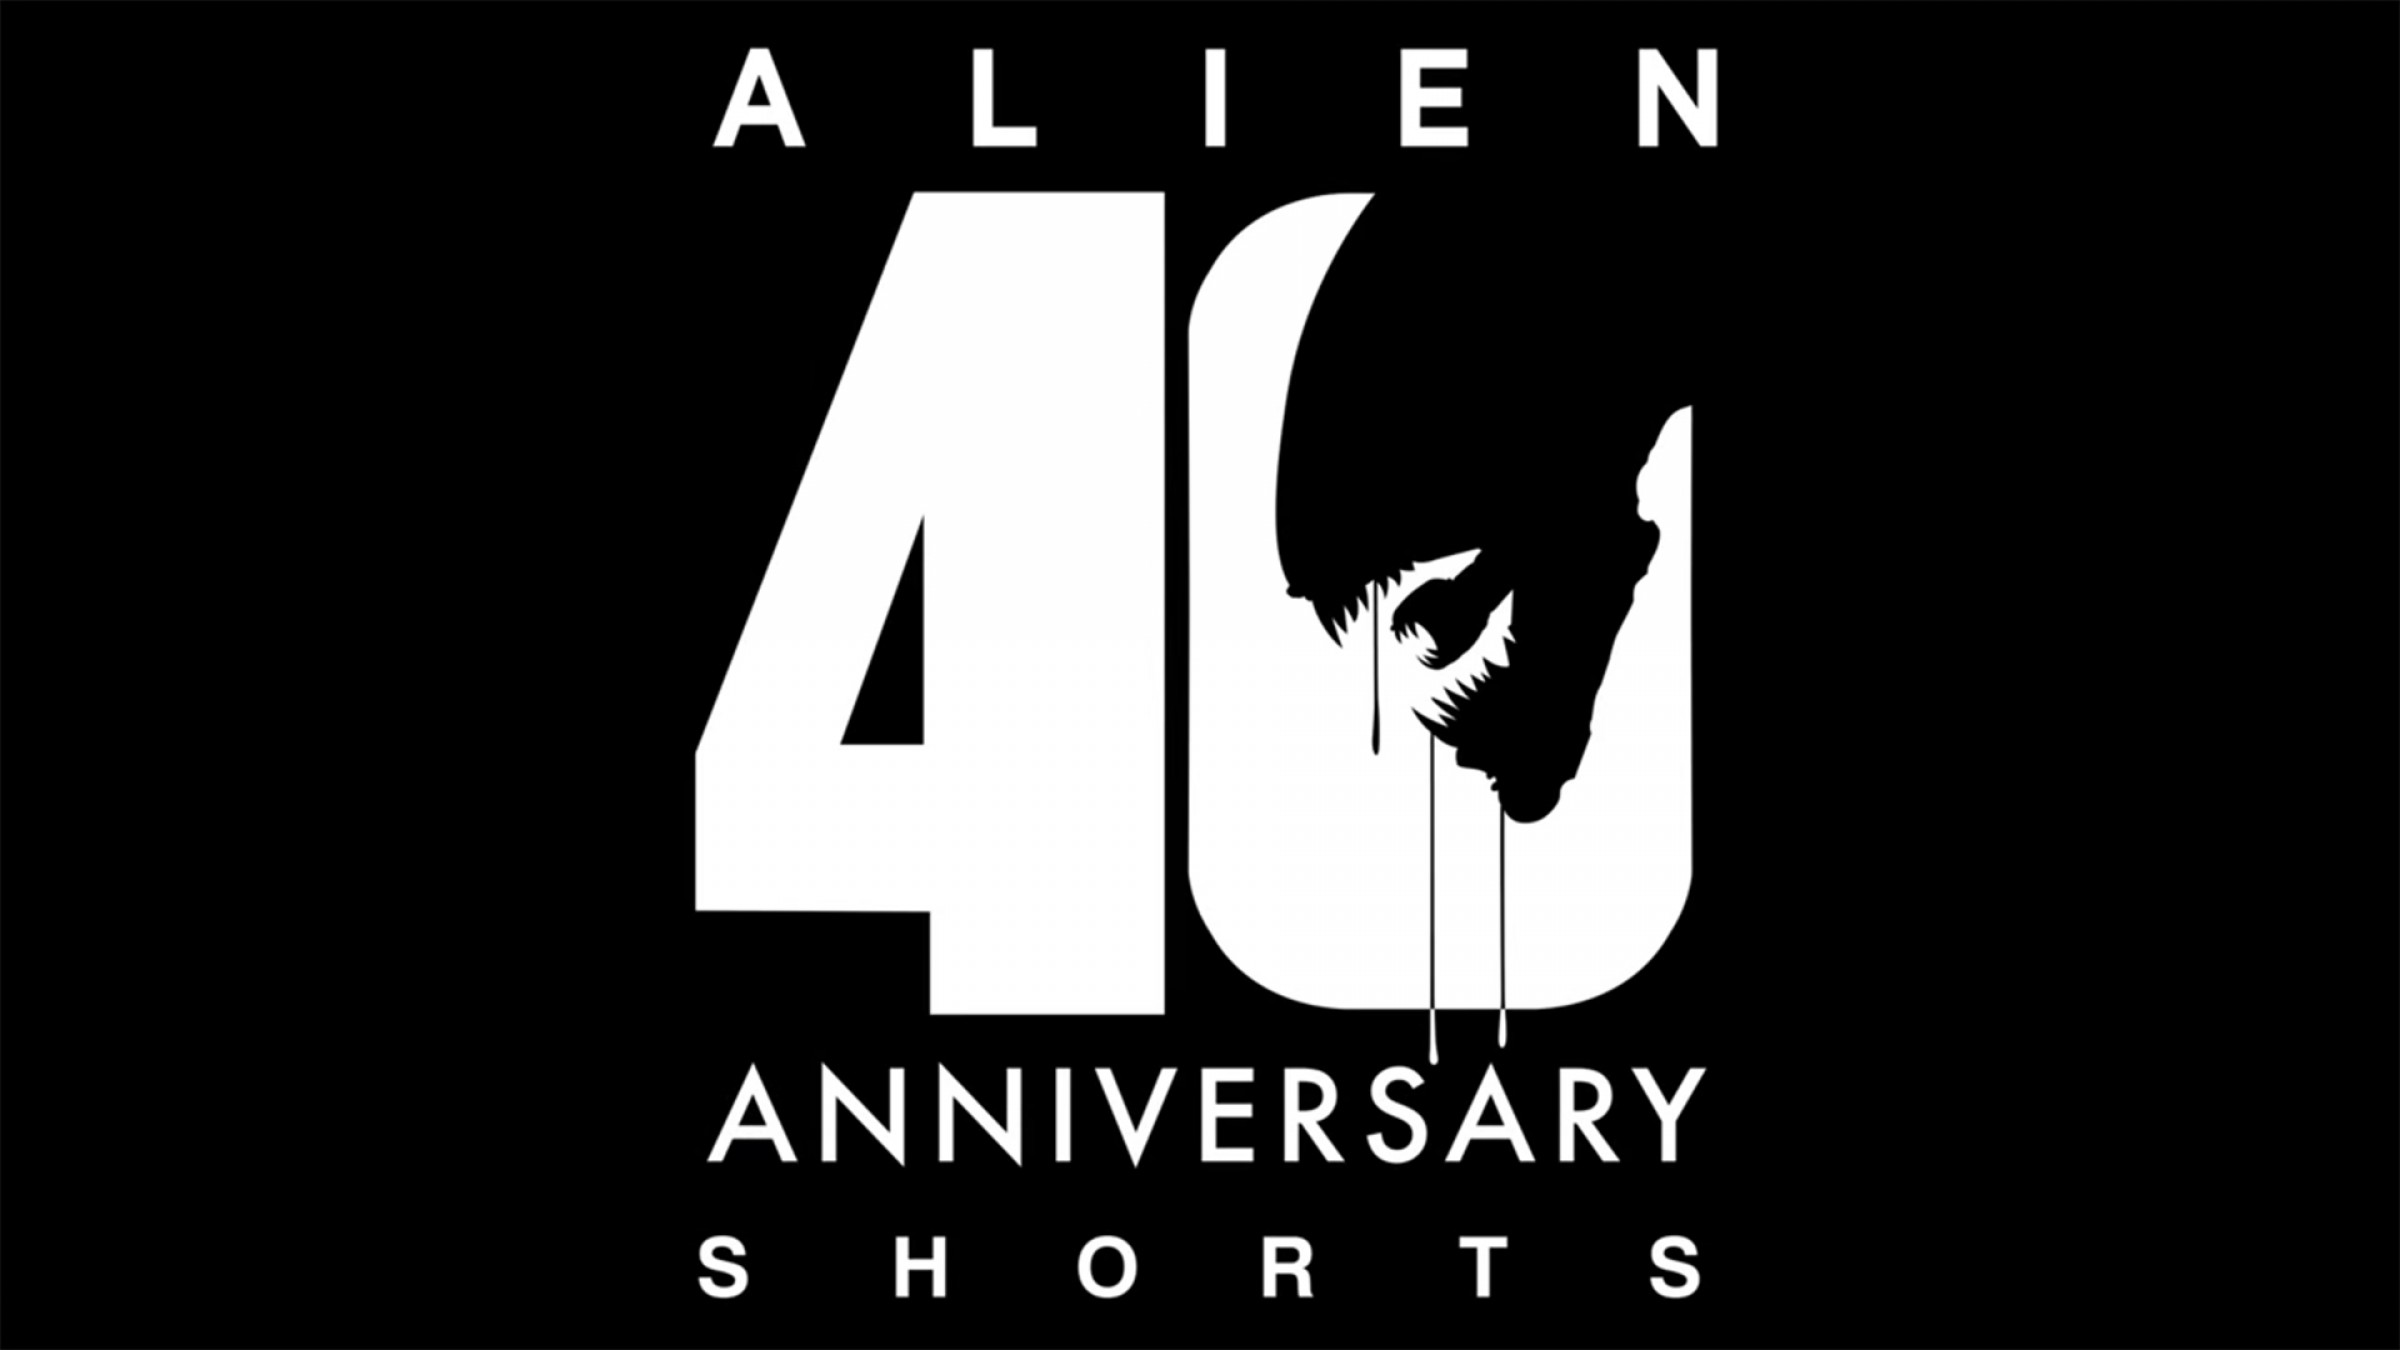 Ridley Scott's 'Alien' Celebrates 40 Years with All New Short Films